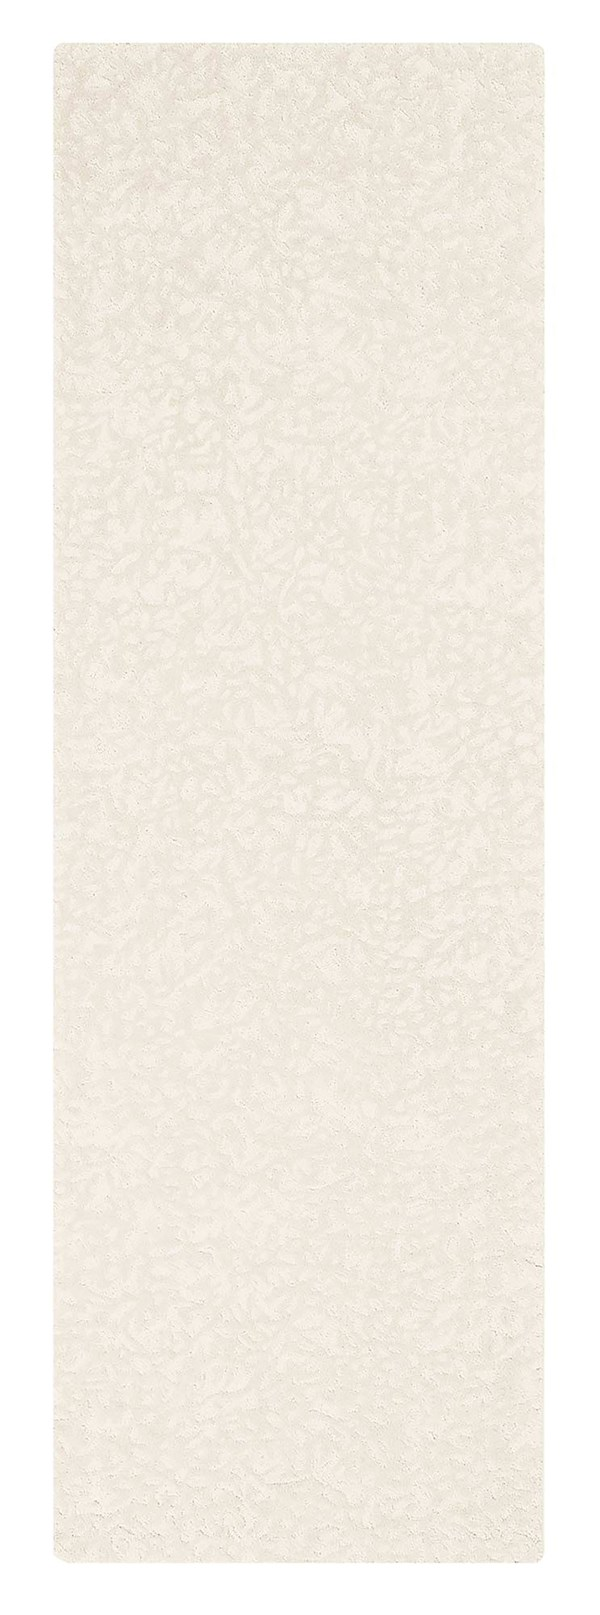 Oyster (10310) Textured Solid Area Rug